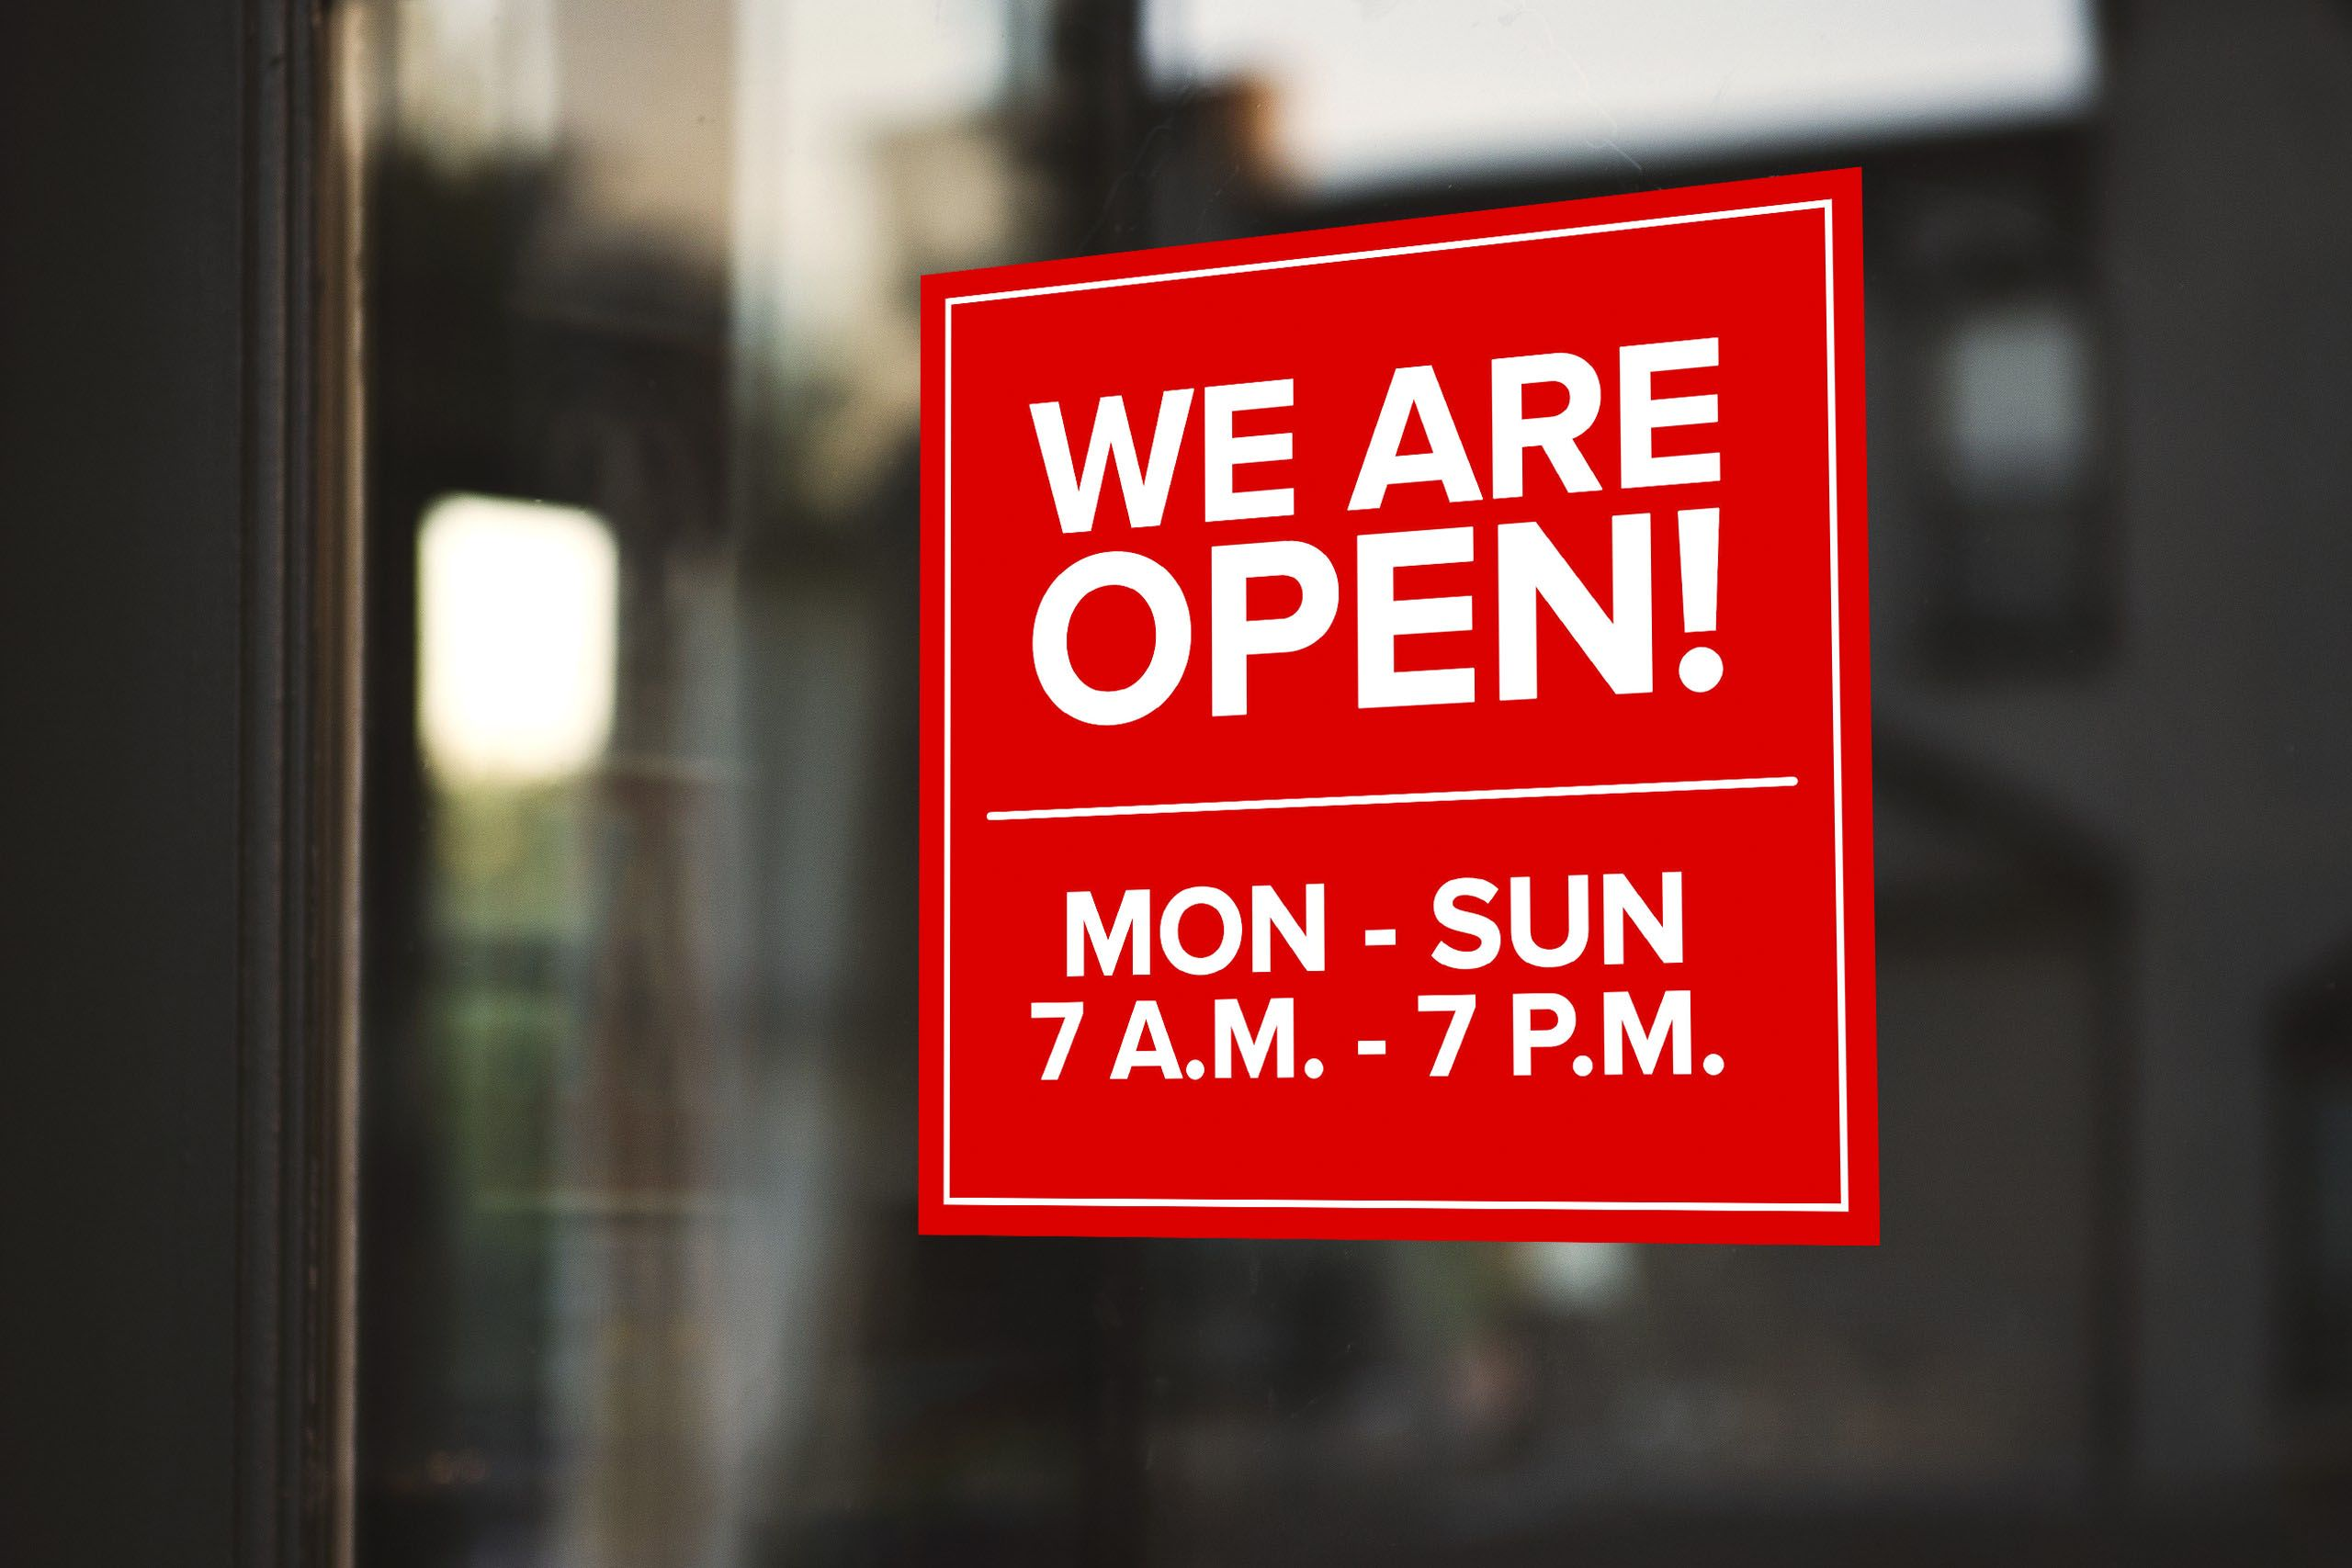 we are open window decal